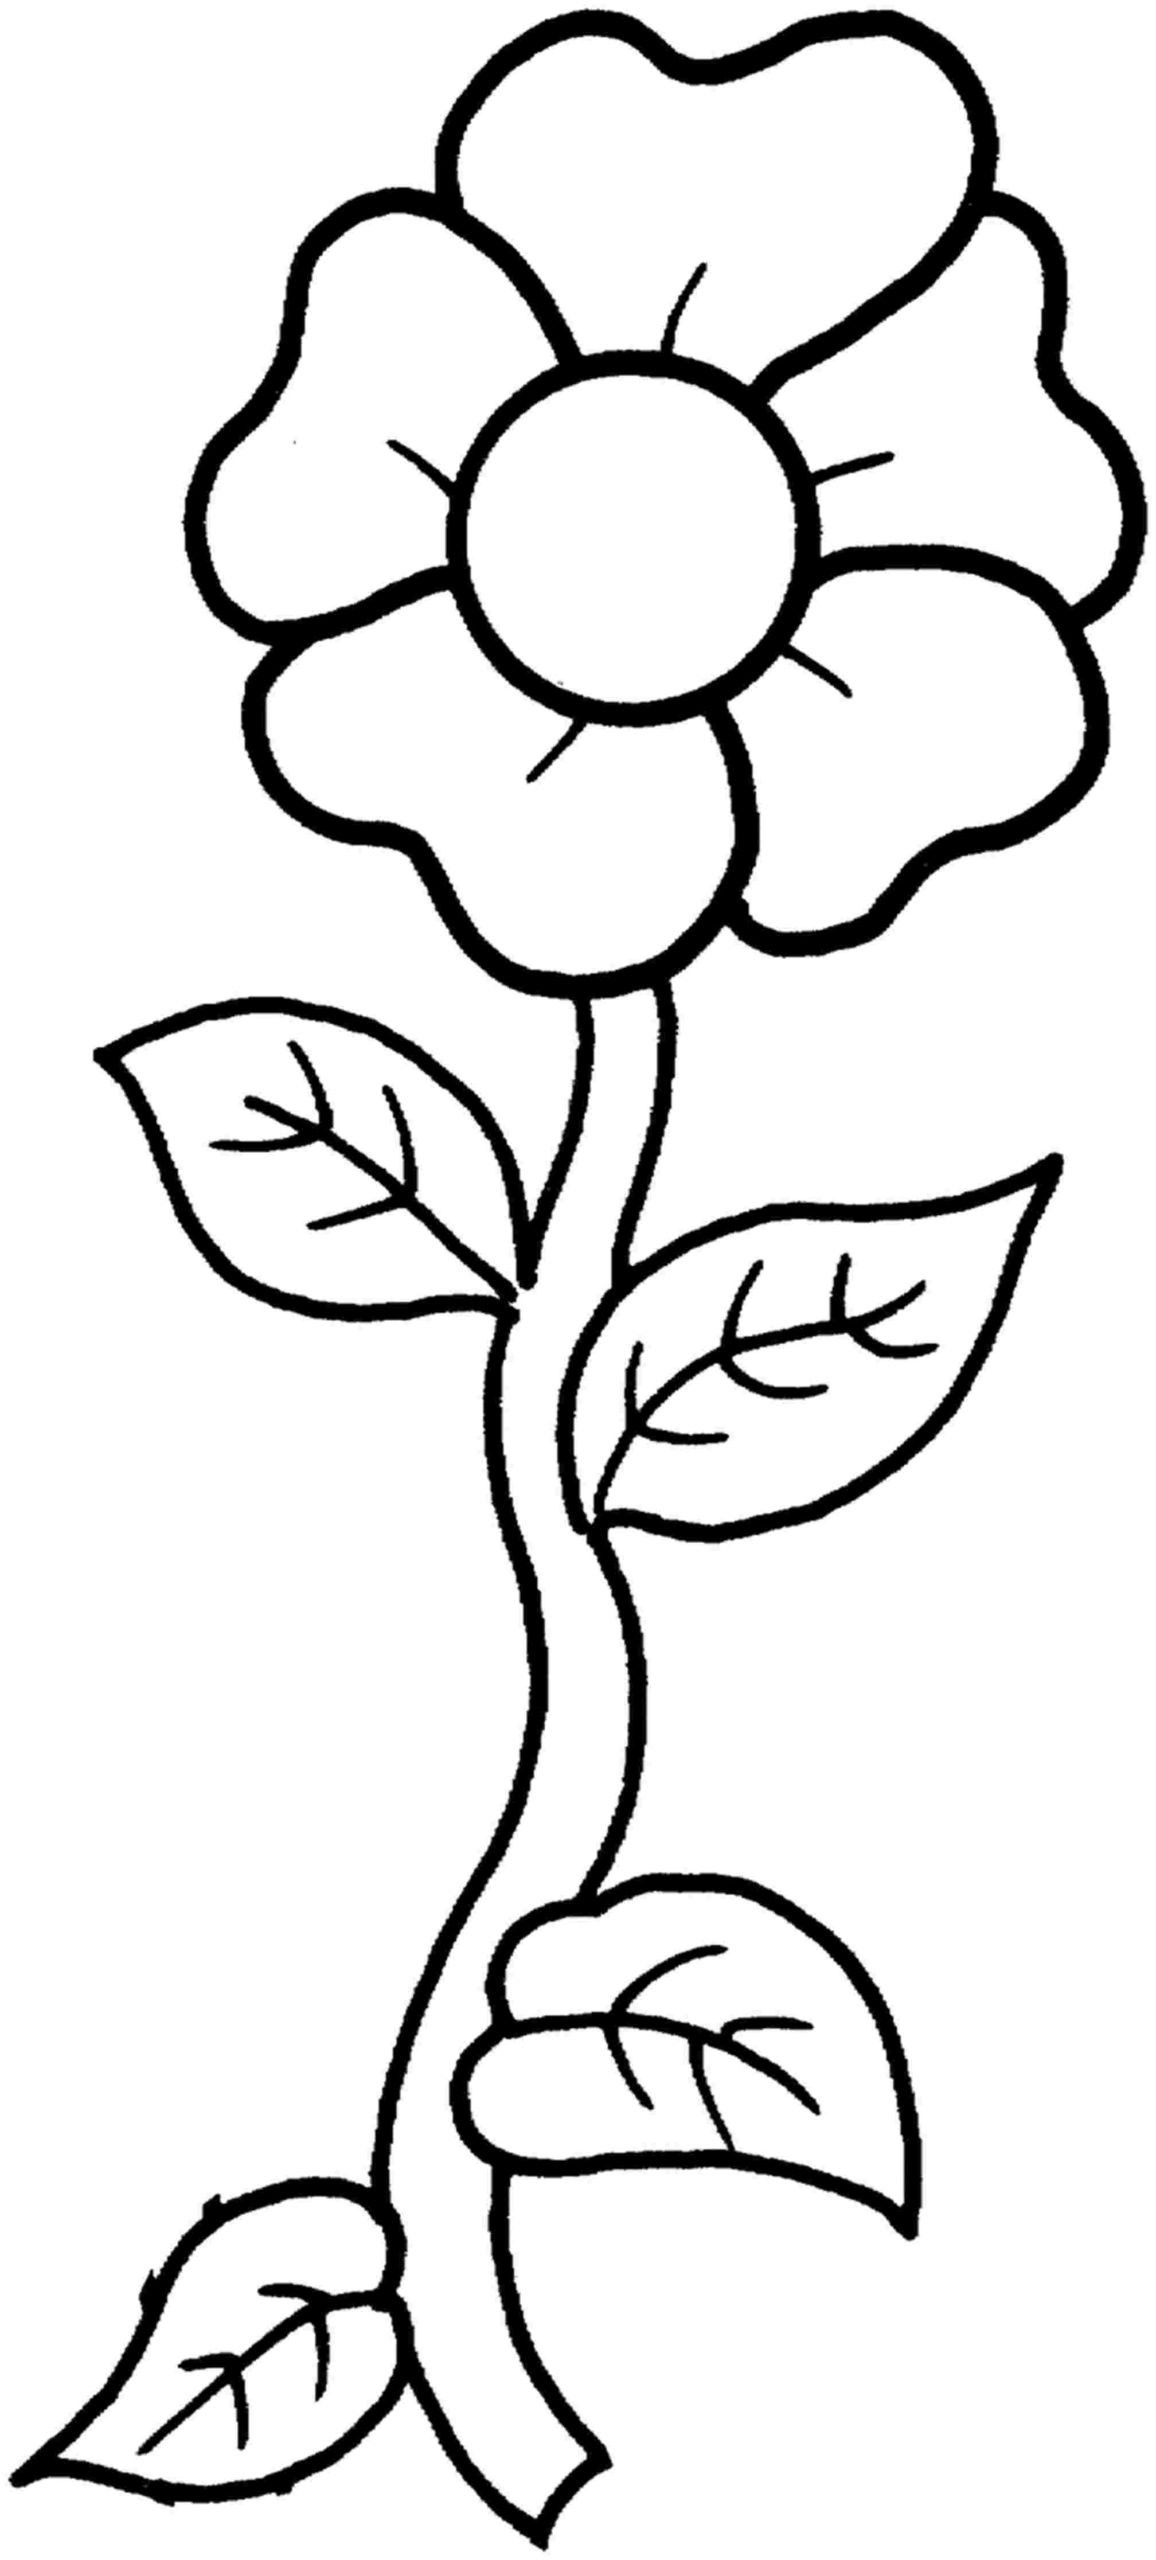 Flower Stem Coloring Page Youngandtae Com Printable Flower Coloring Pages Rose Coloring Pages Flower Coloring Pages